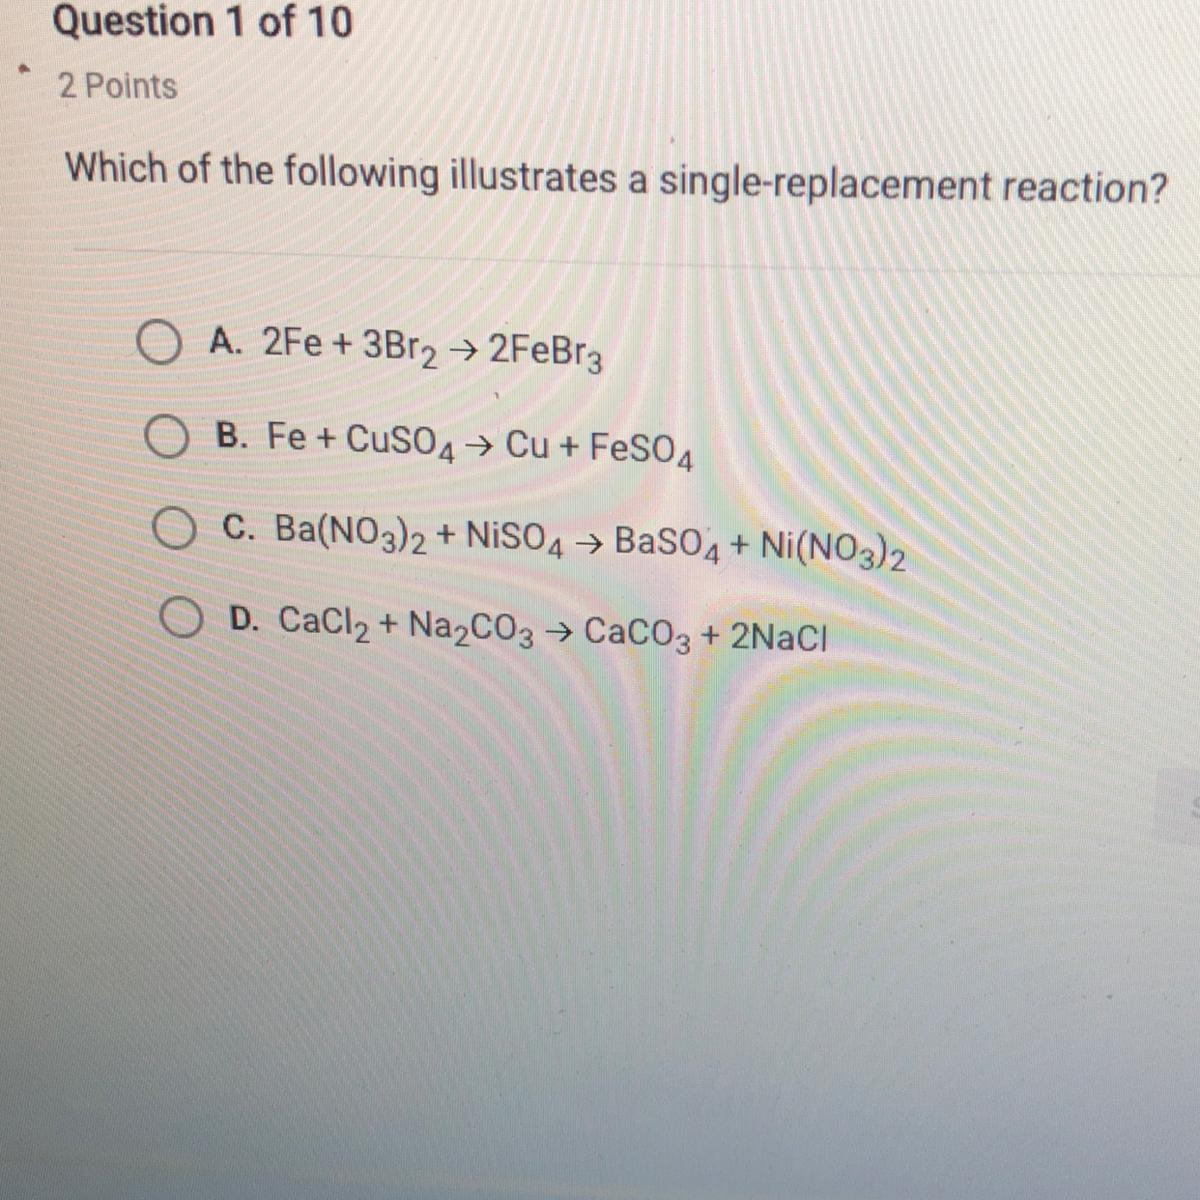 Which Of The Following Is The Answer That Illustrates A